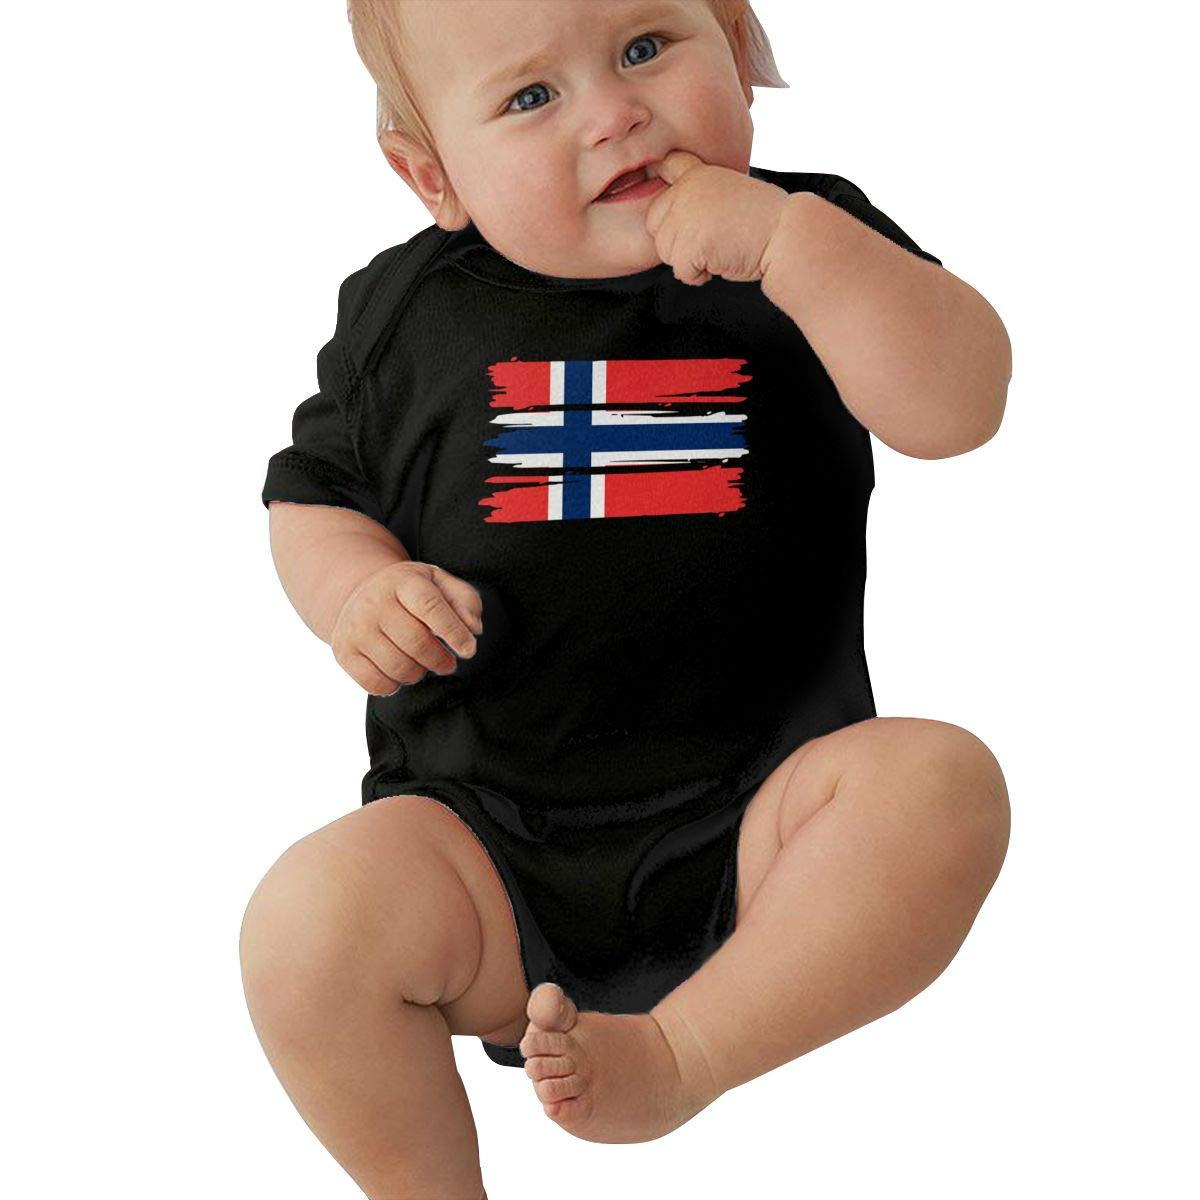 TAOHJS97 Baby Girls Norway Flag Short Sleeve Climbing Clothes Playsuit Suit 6-24 Months